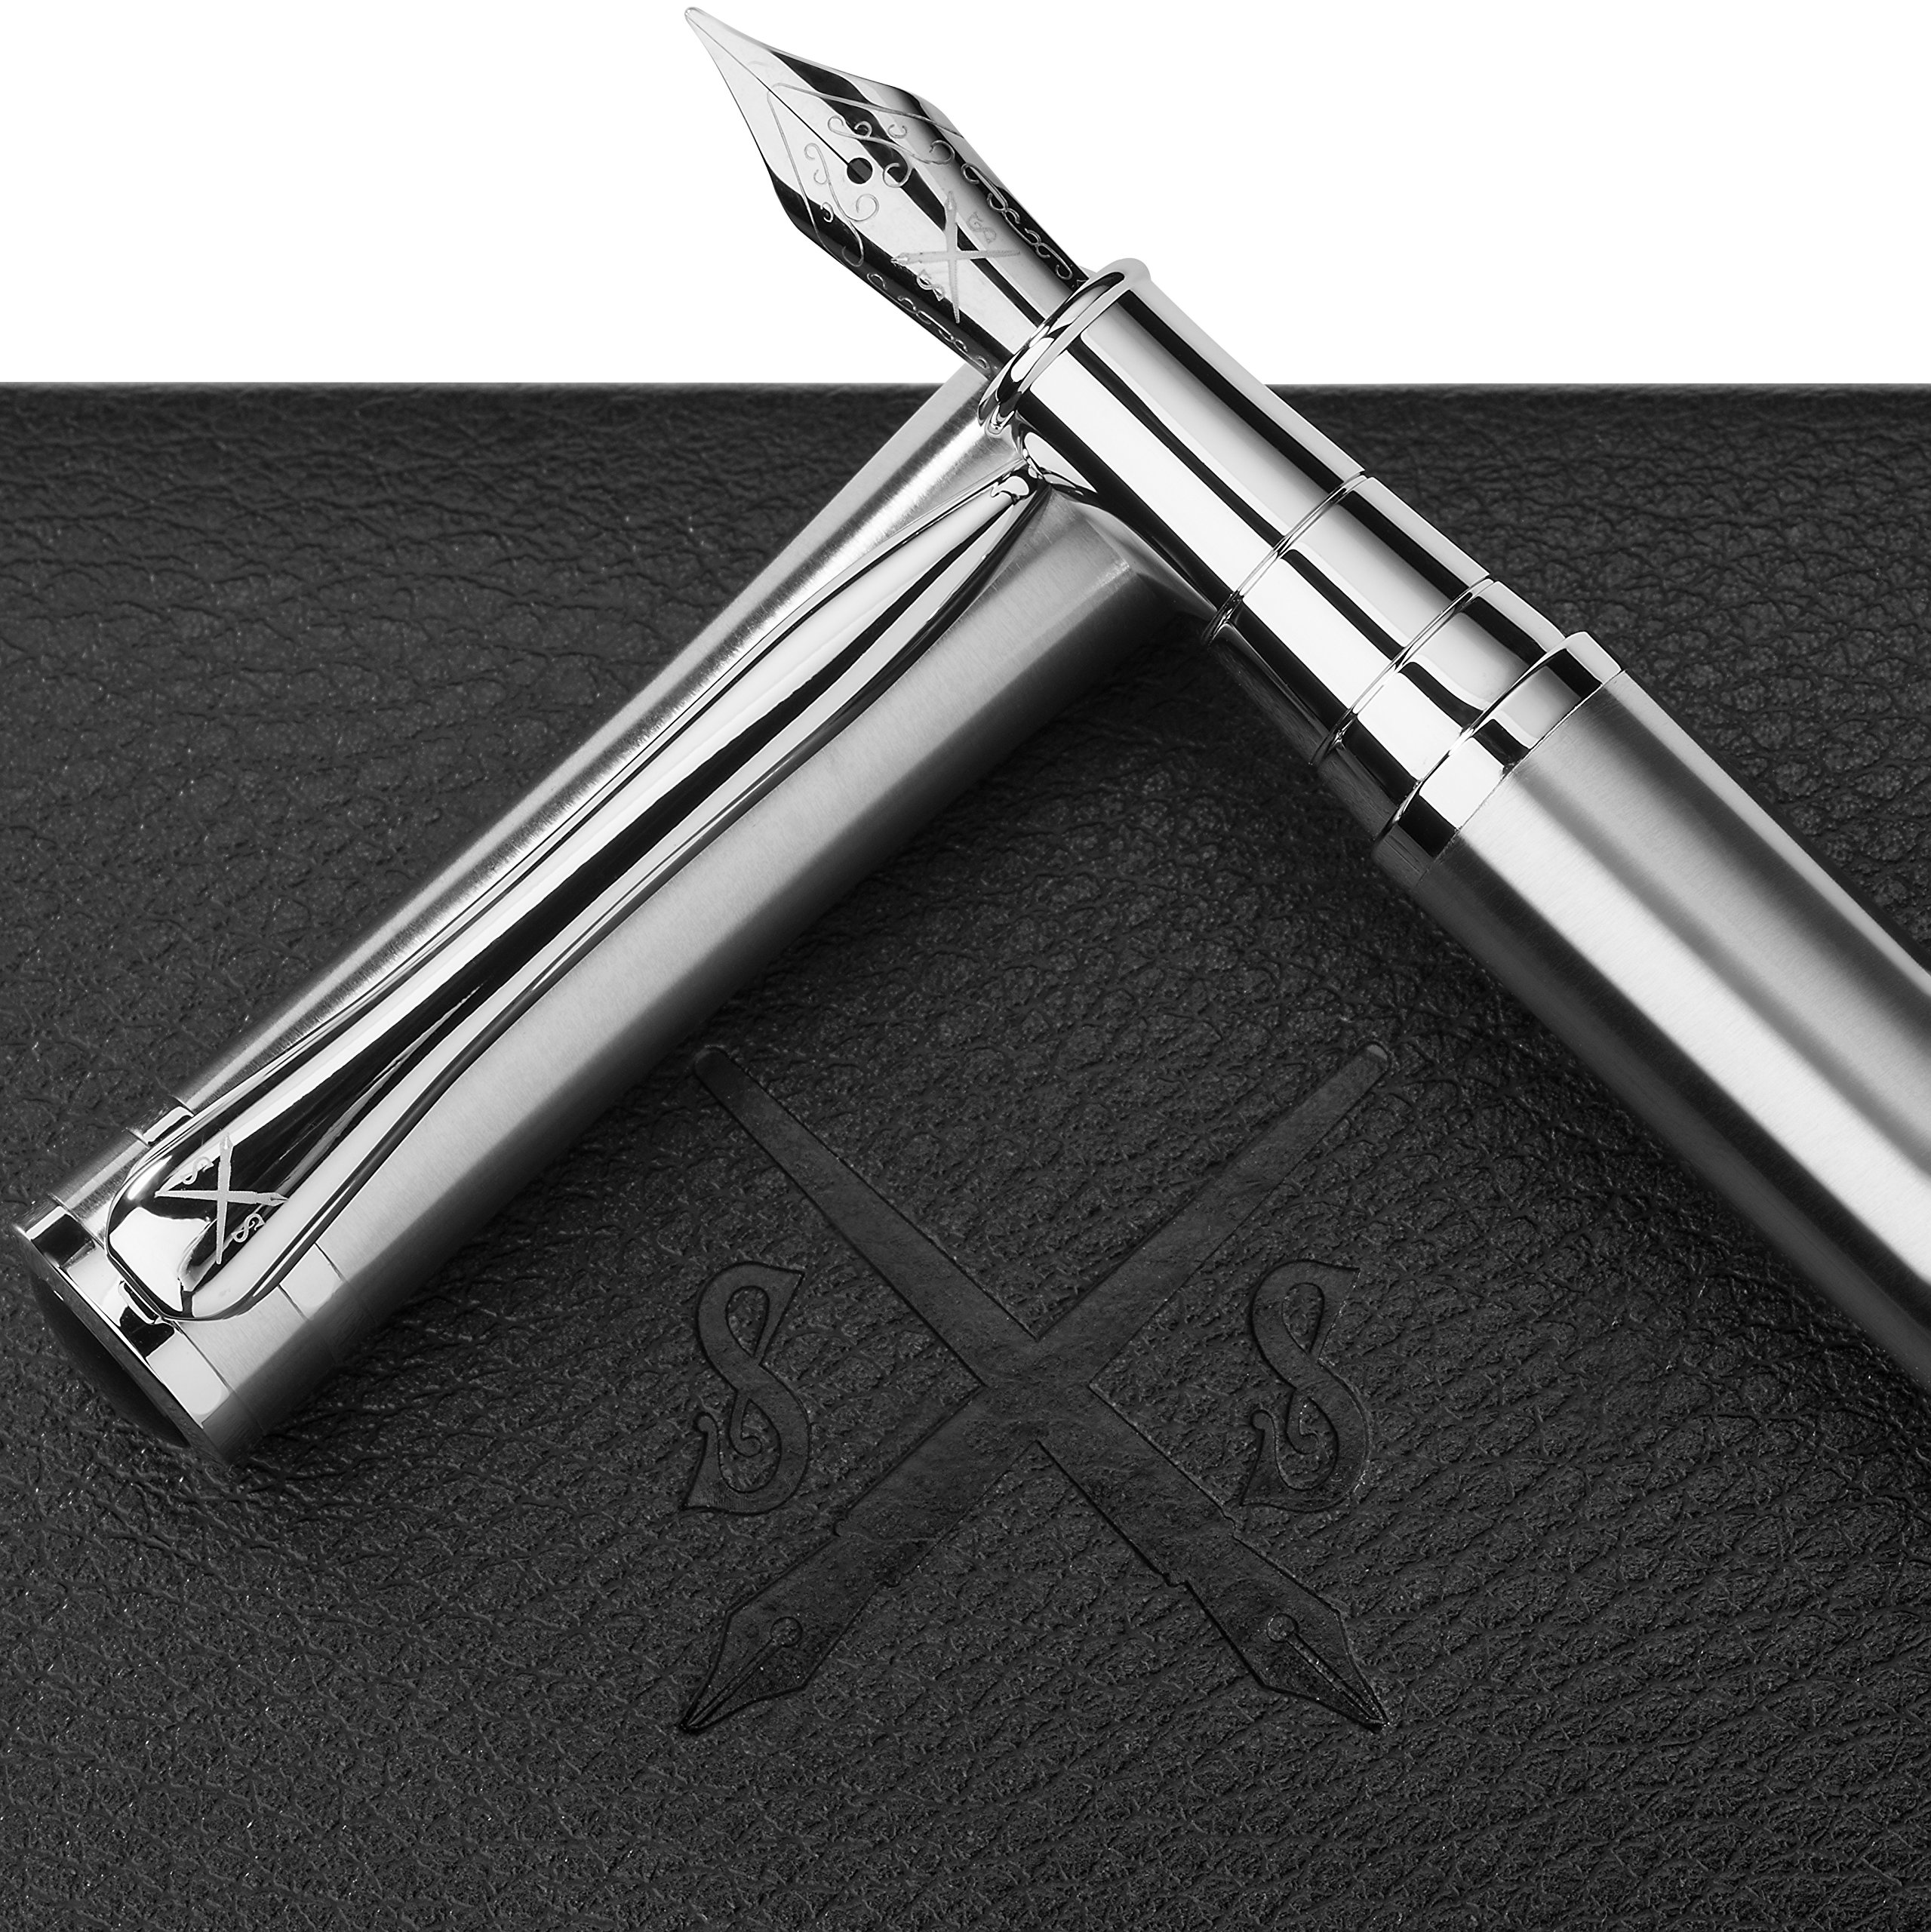 Scribe Sword Fountain Pen with Ink - Calligraphy Pens for Writing - Designer Gift Set - Medium Nib - A Business Executive Fountain Pen and Case - Instructions Included by Scribe Sword (Image #1)